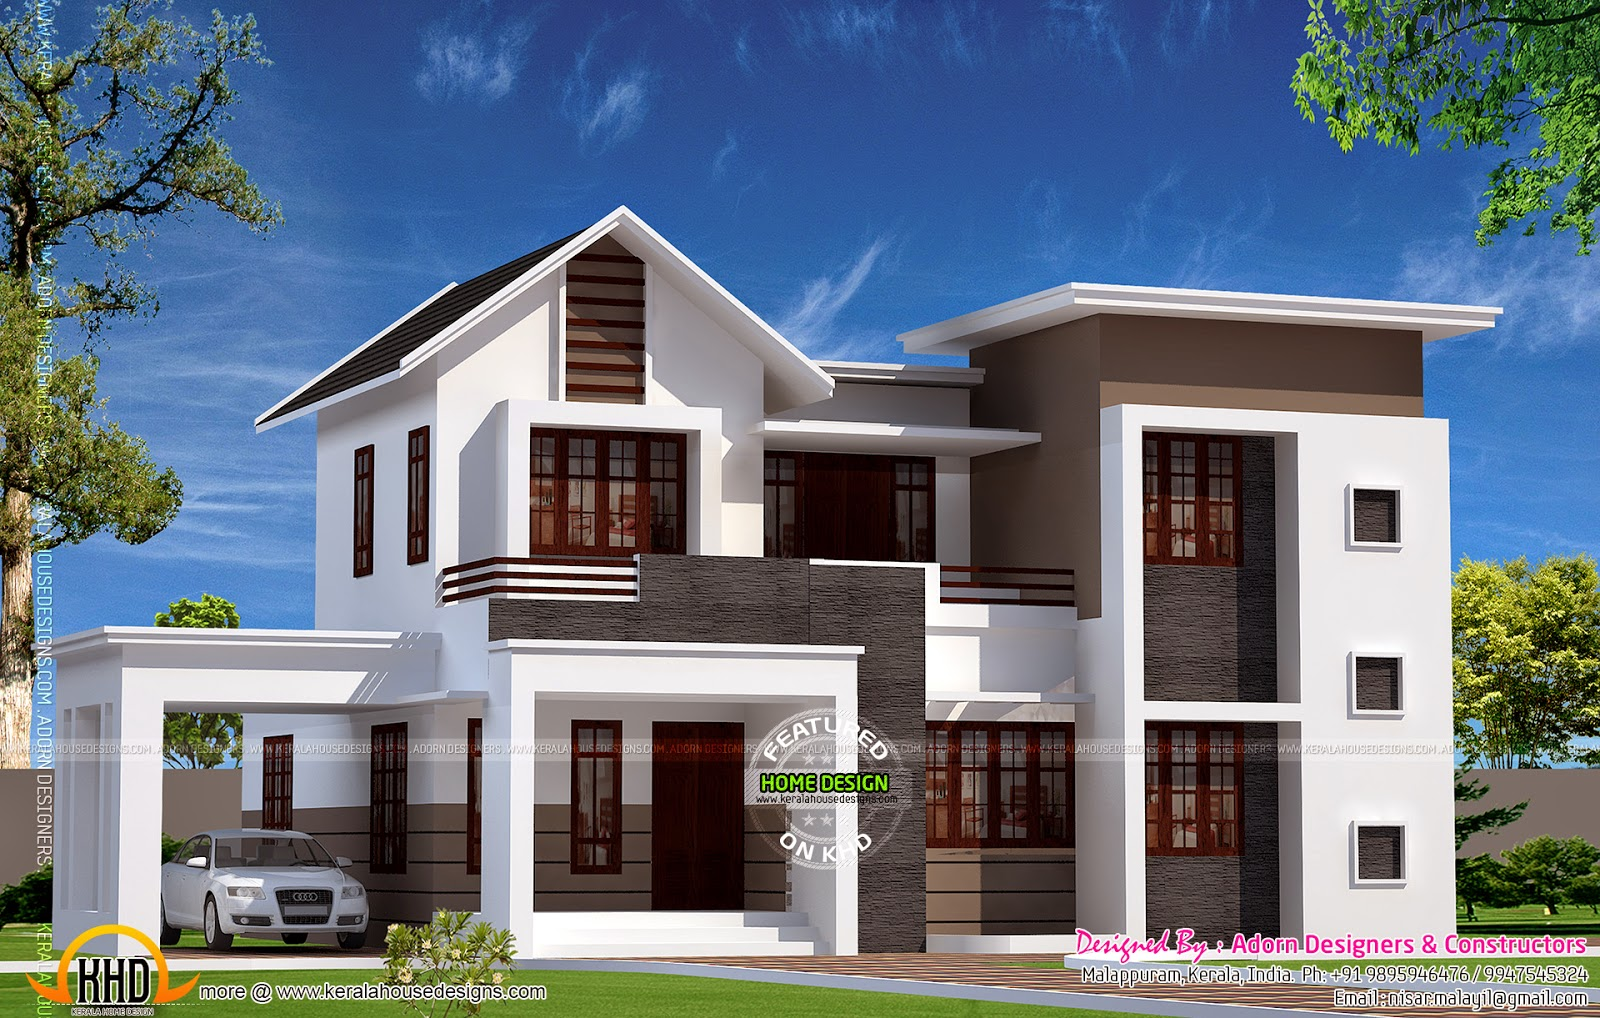 24 Artistic New Home Designs Images - House Plans